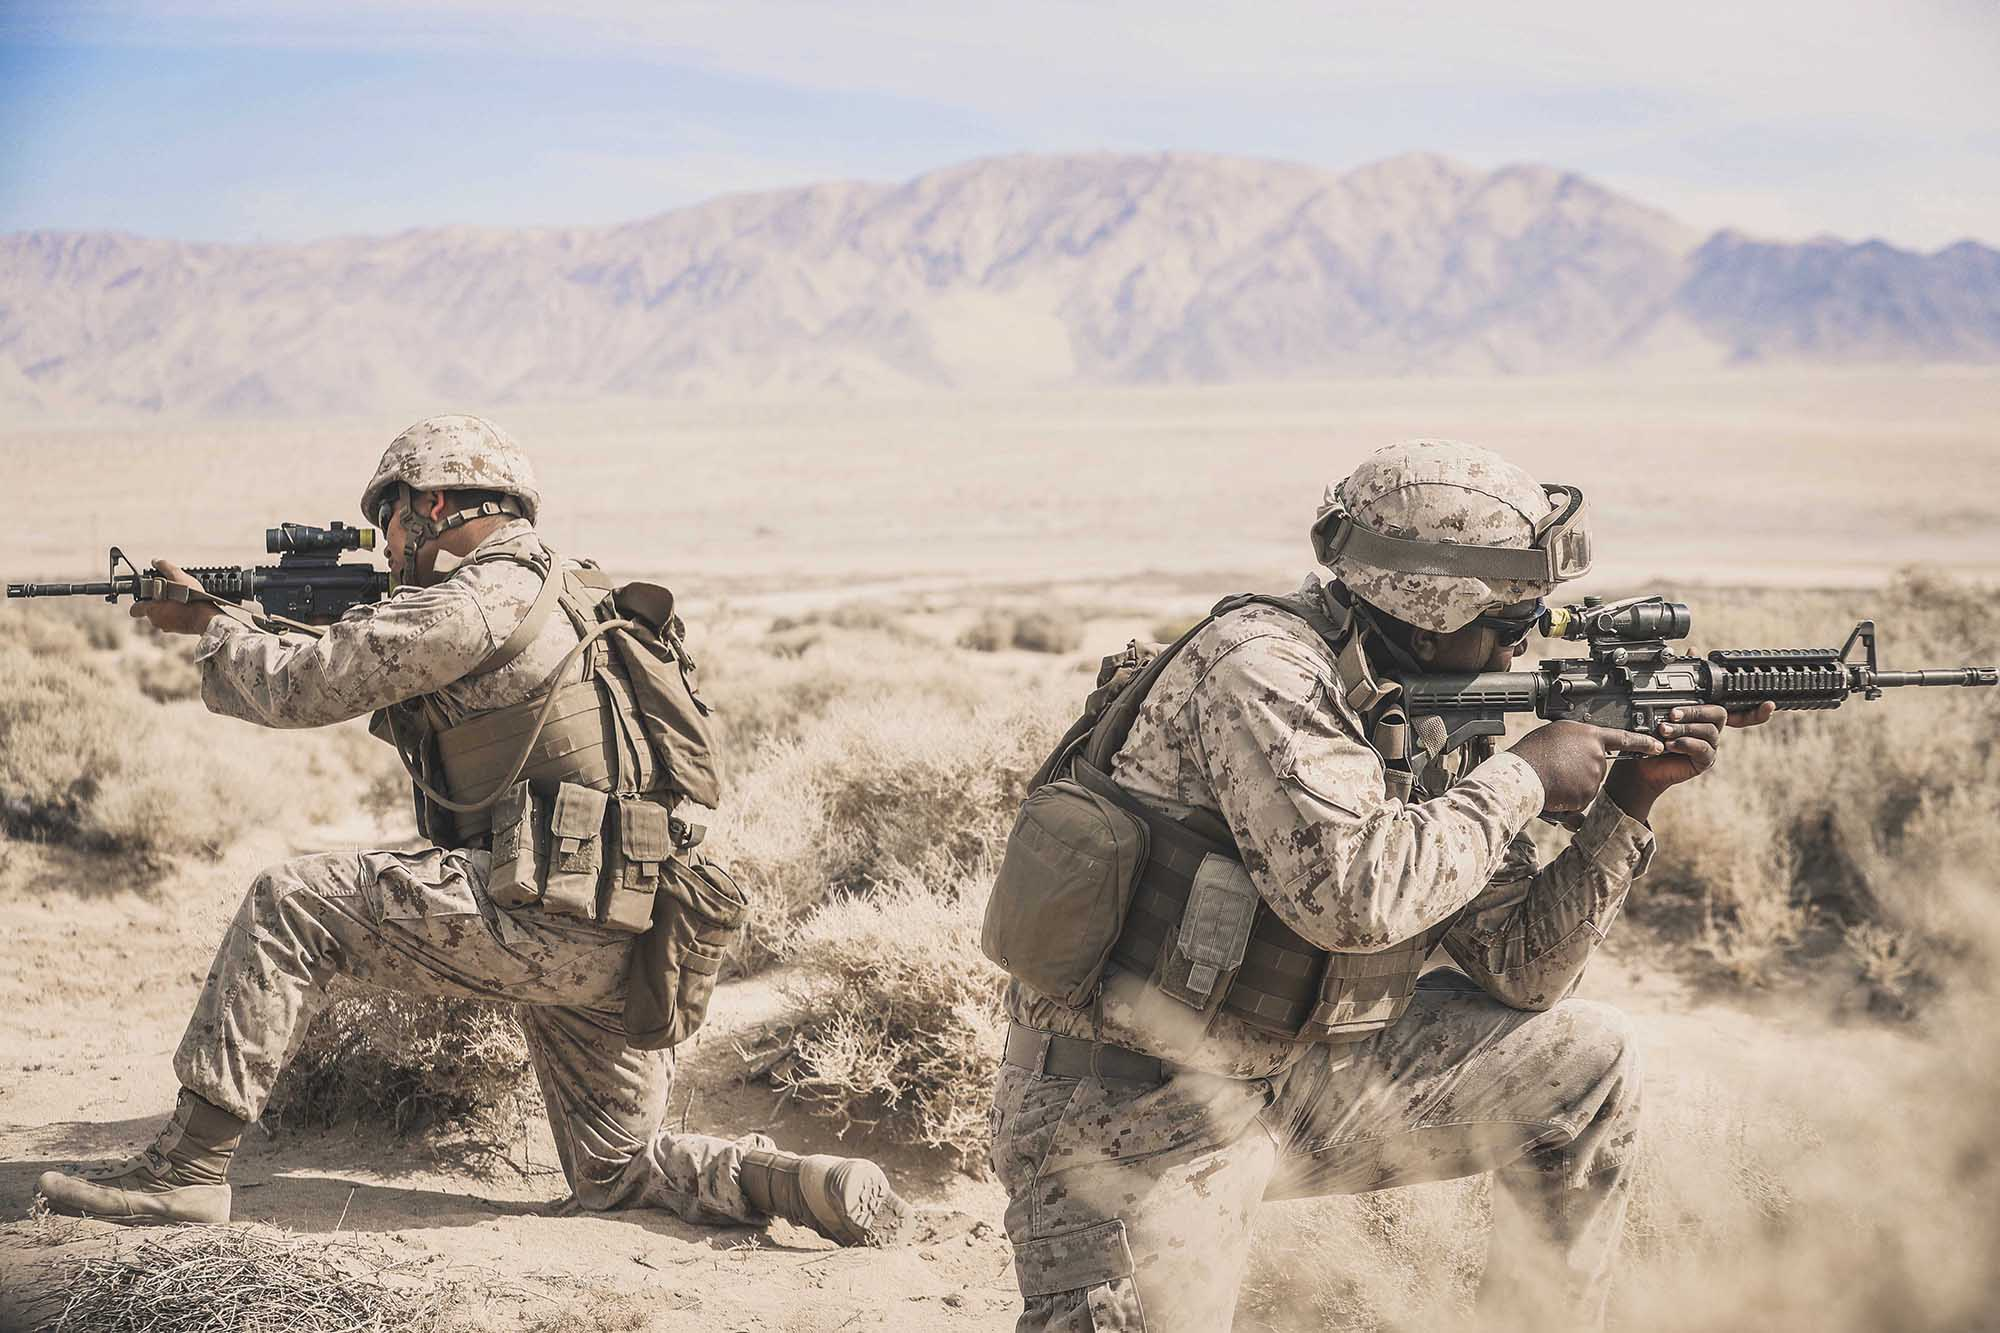 Cpl. Sathya Breckinridge and Lance Cpl. Keavious Blackmon provide cover during Integrated Training Exercise 1-21 at Marine Air Ground Combat Center Twentynine Palms, Calif., Oct. 5, 2020. (Lance Cpl. Zachary Zephir/Marine Corps)